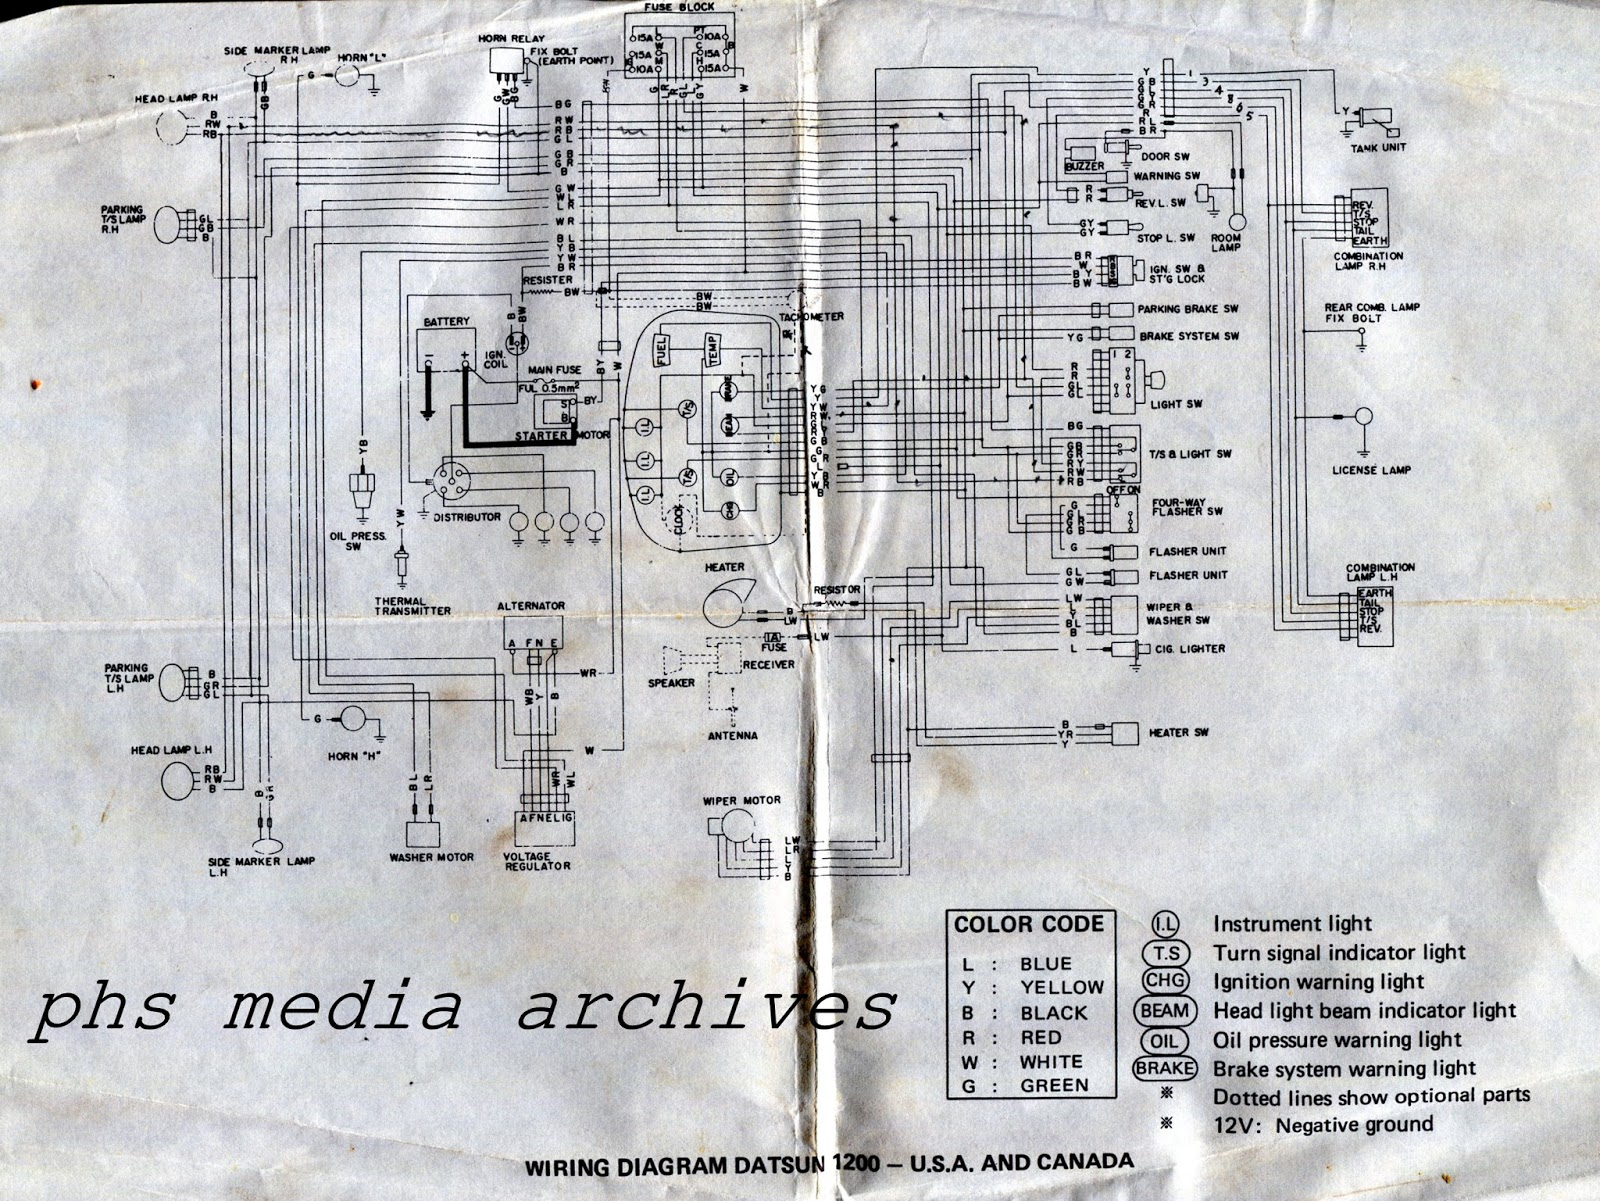 hight resolution of datsun 521 wiring diagram schematic diagram downloaddatsun 521 wiring diagram oue granite decor uk